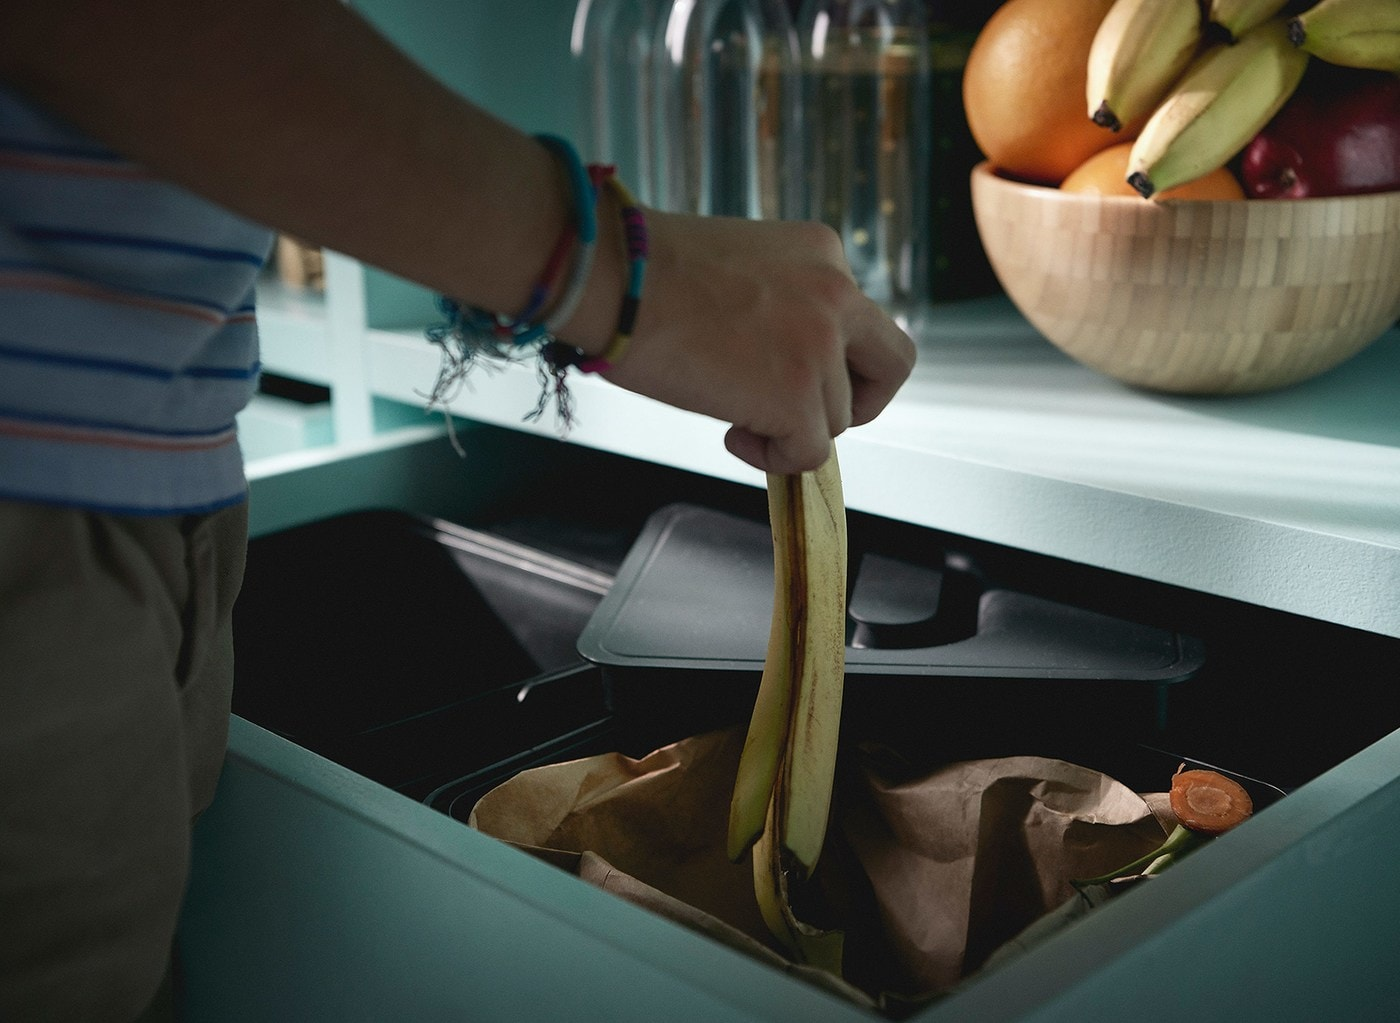 A person wearing bracelets dropping a banana skin in to an IKEA VARIERA recycling bin, in a kitchen drawer.